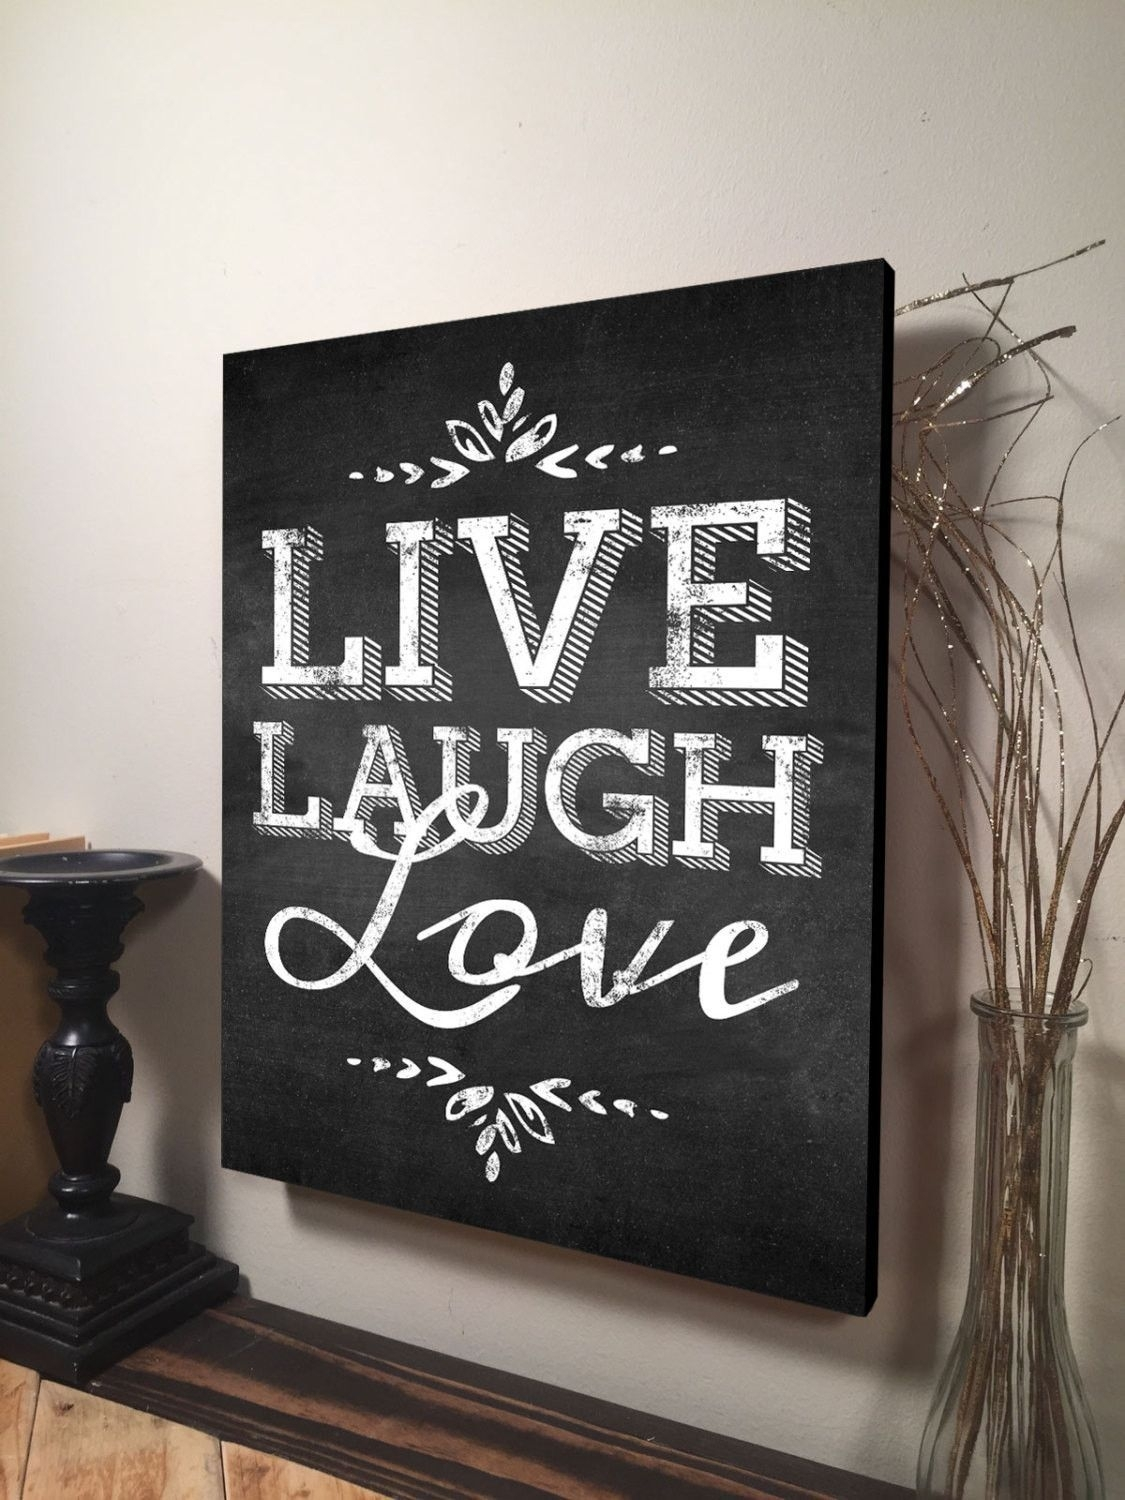 Live Laugh Love Wall Art Inspirational Quote Home Decor Canvas Art With Regard To Most Recent Canvas Wall Art Family Quotes (View 7 of 15)